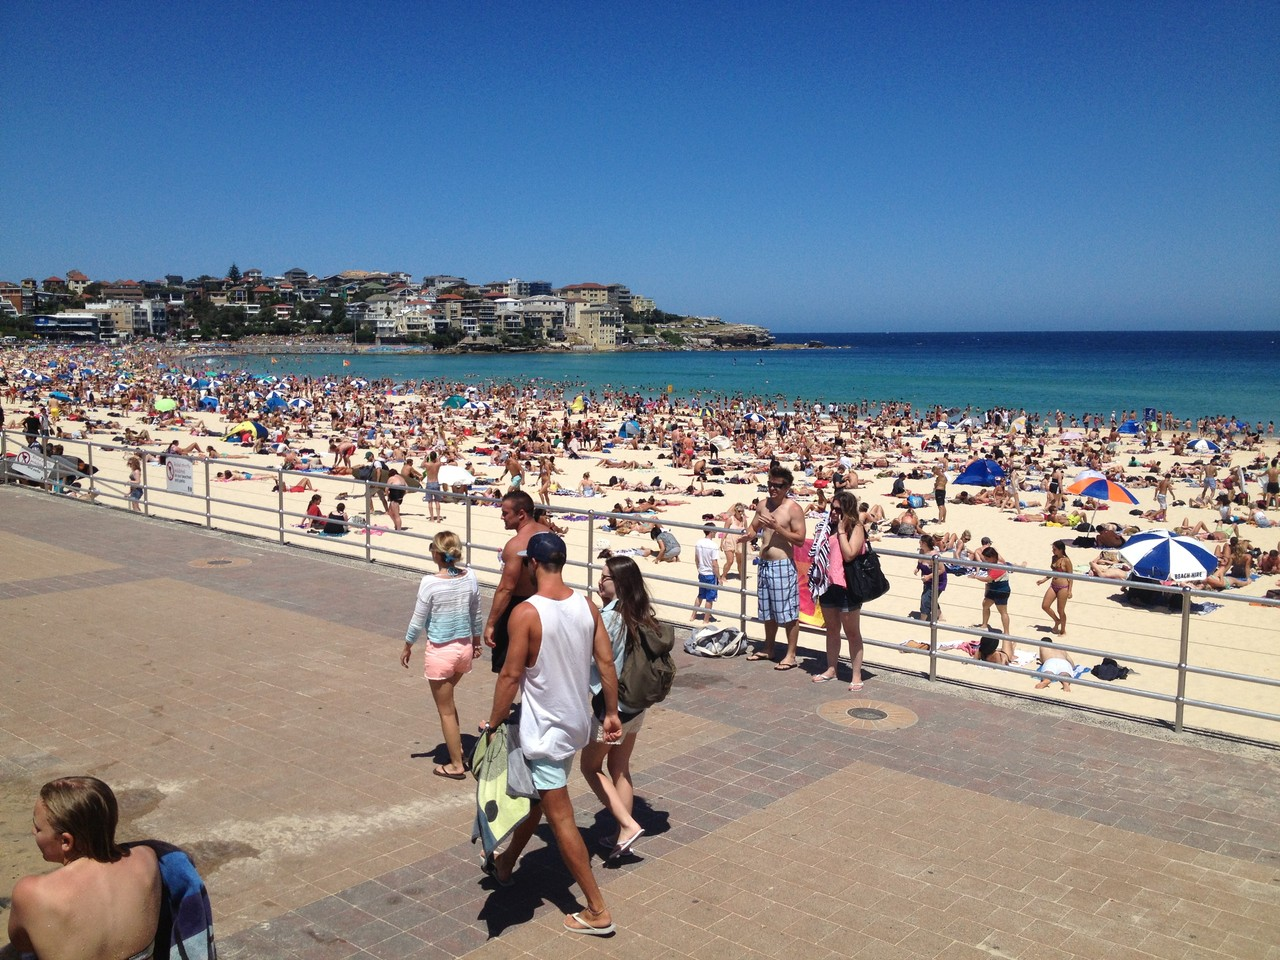 A lot of people on the beach .... — at Bondi Beach.